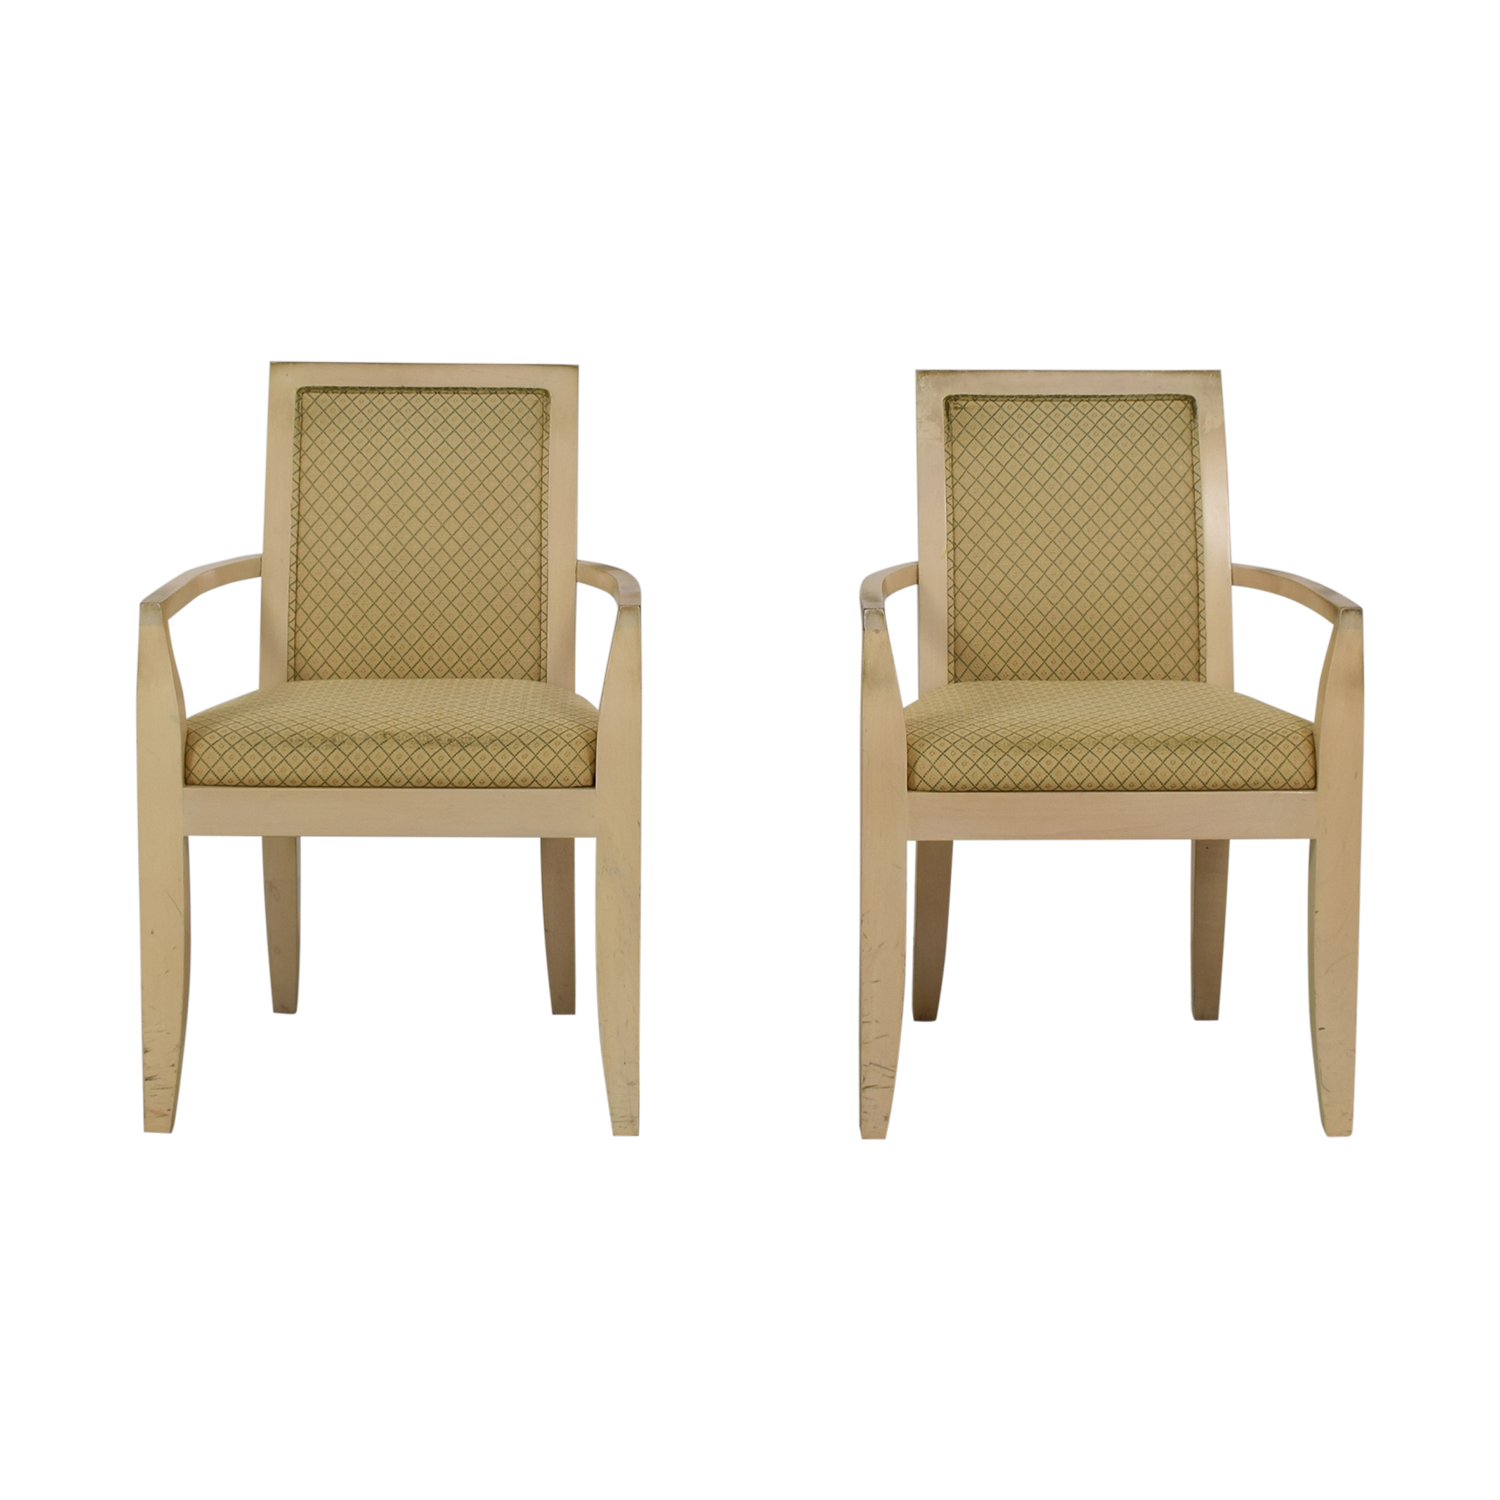 Todd Hase Todd Hase Beige Upholstered Accent Chairs price